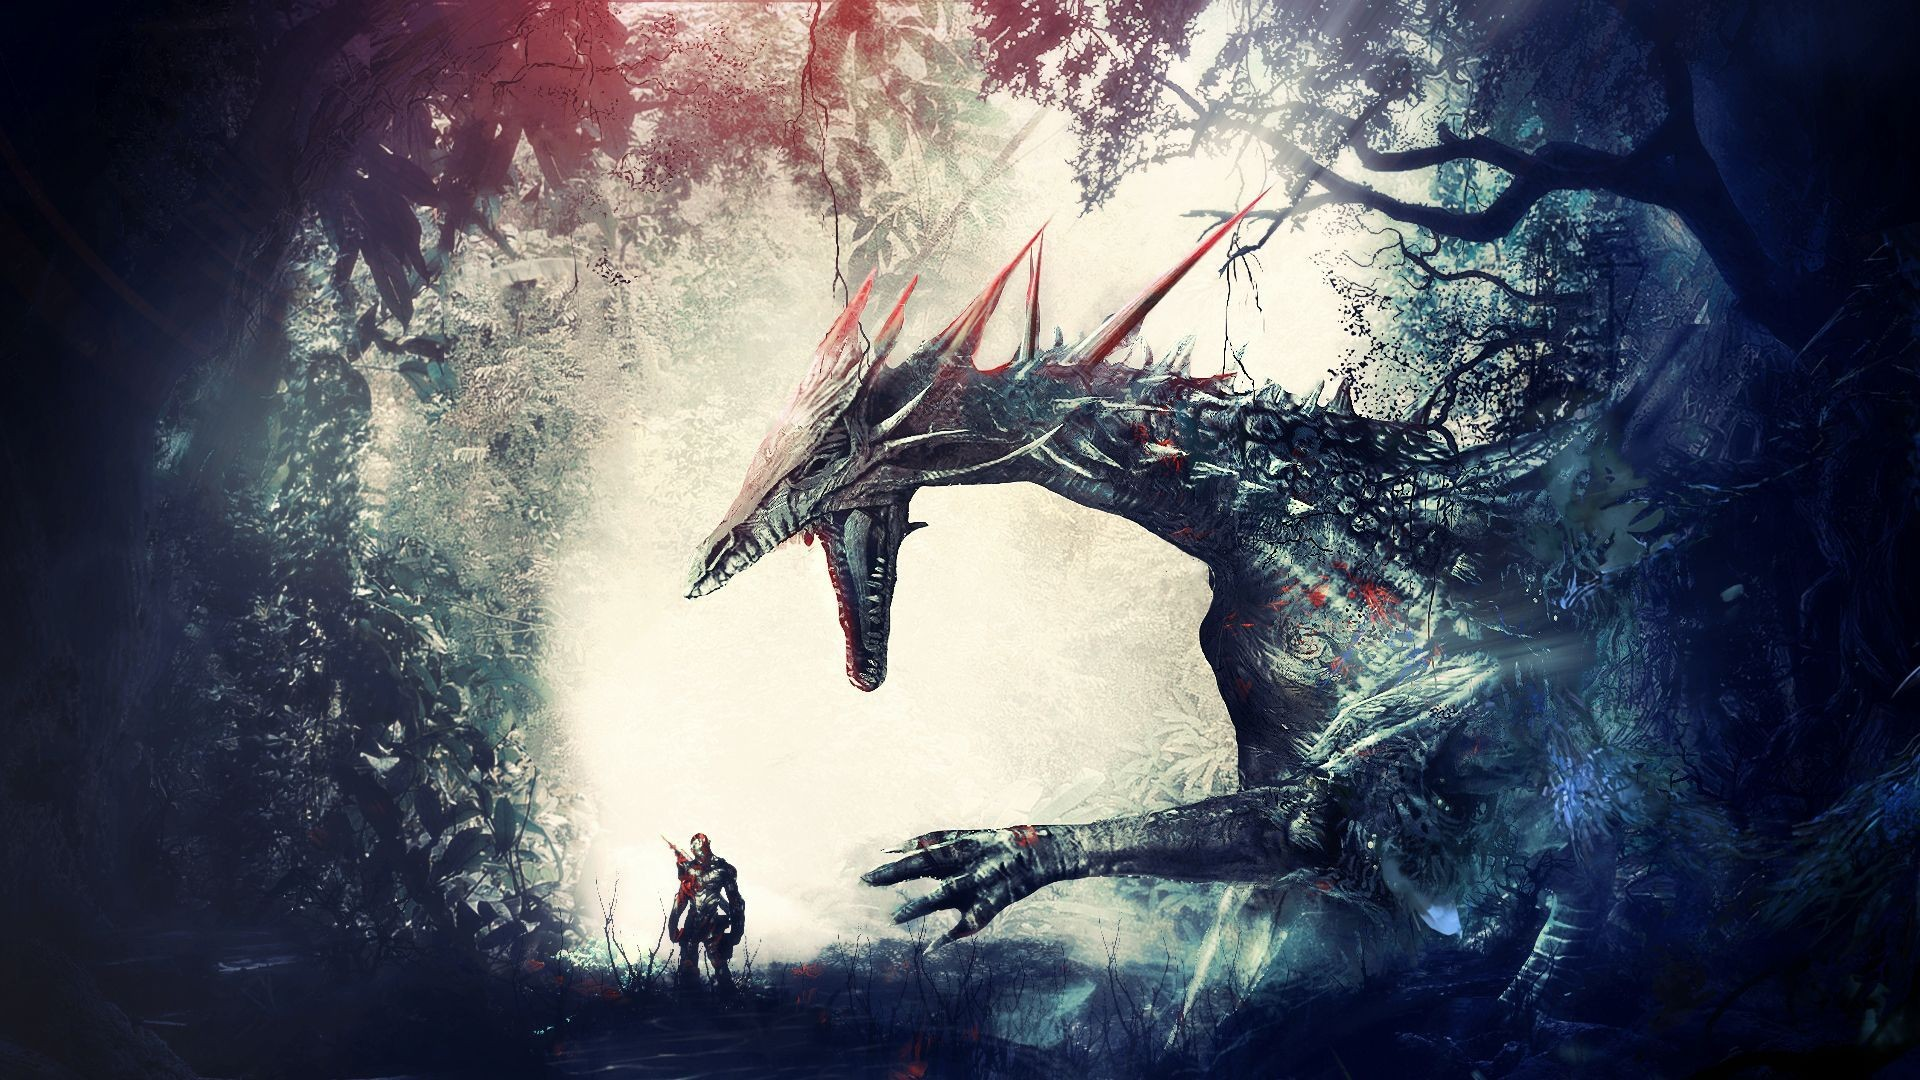 Knights Forest Dragon Artwork Warrior Fantasy Art